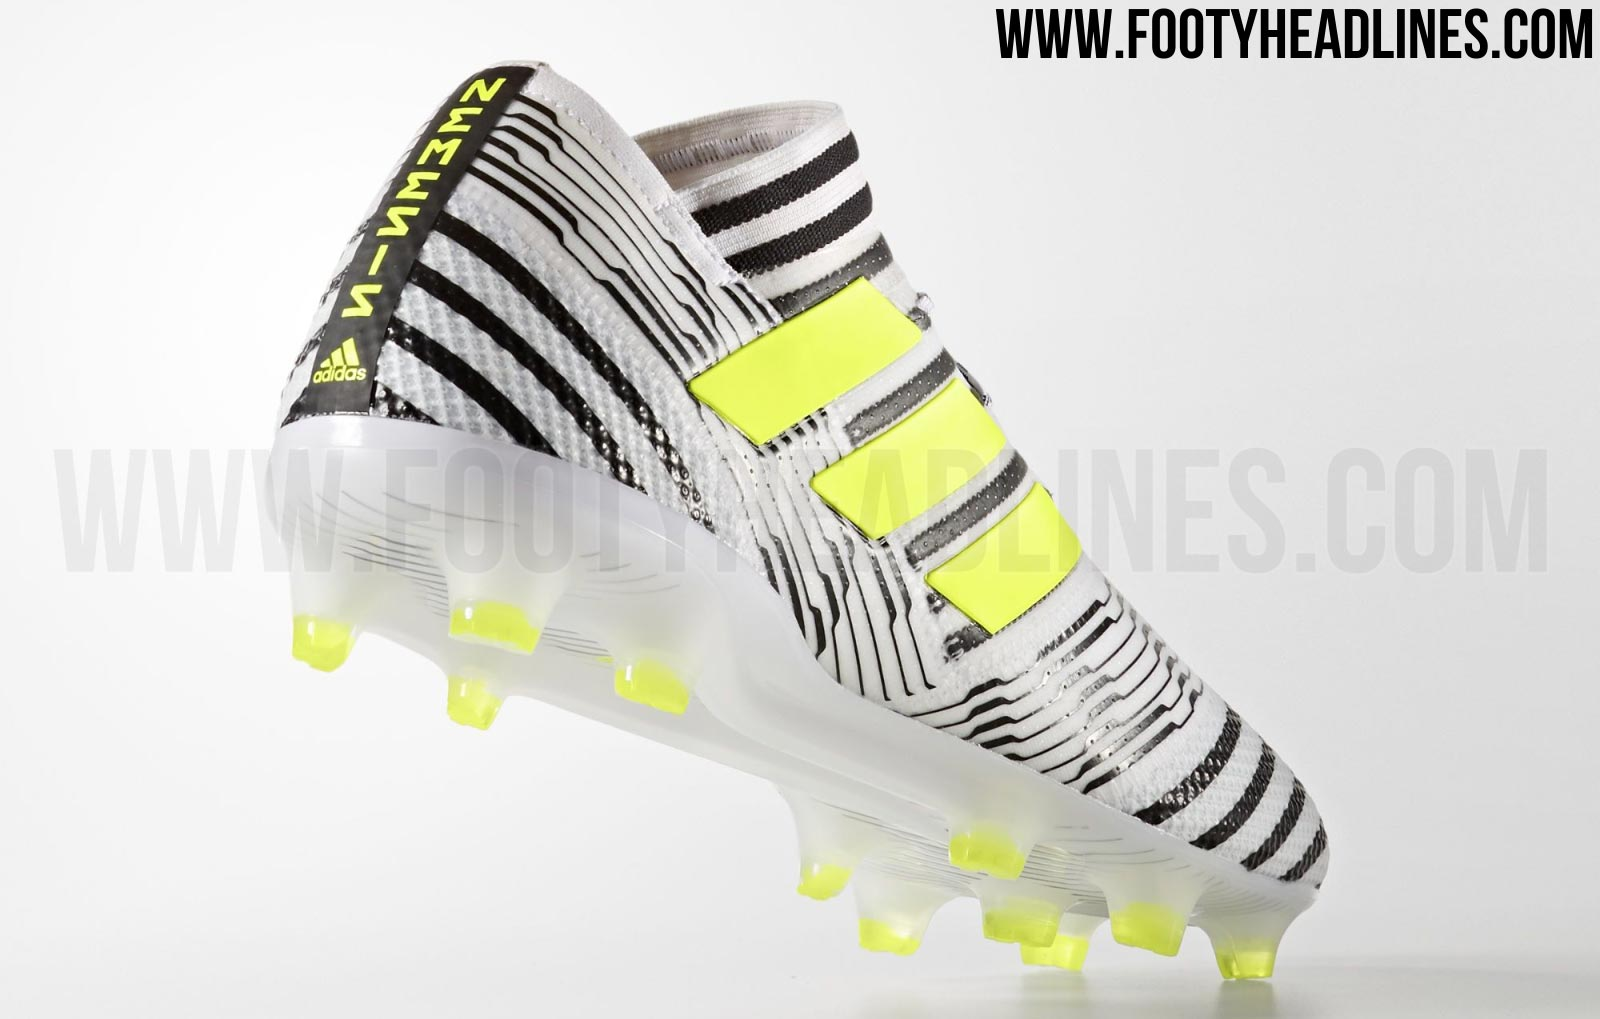 d84eb9b20753 The all-new Adidas Nemeziz 17 for the 2017-18 season replaces the Messi 16  silo. The Argentinian superstar will receive a signature edition of the  Adidas ...